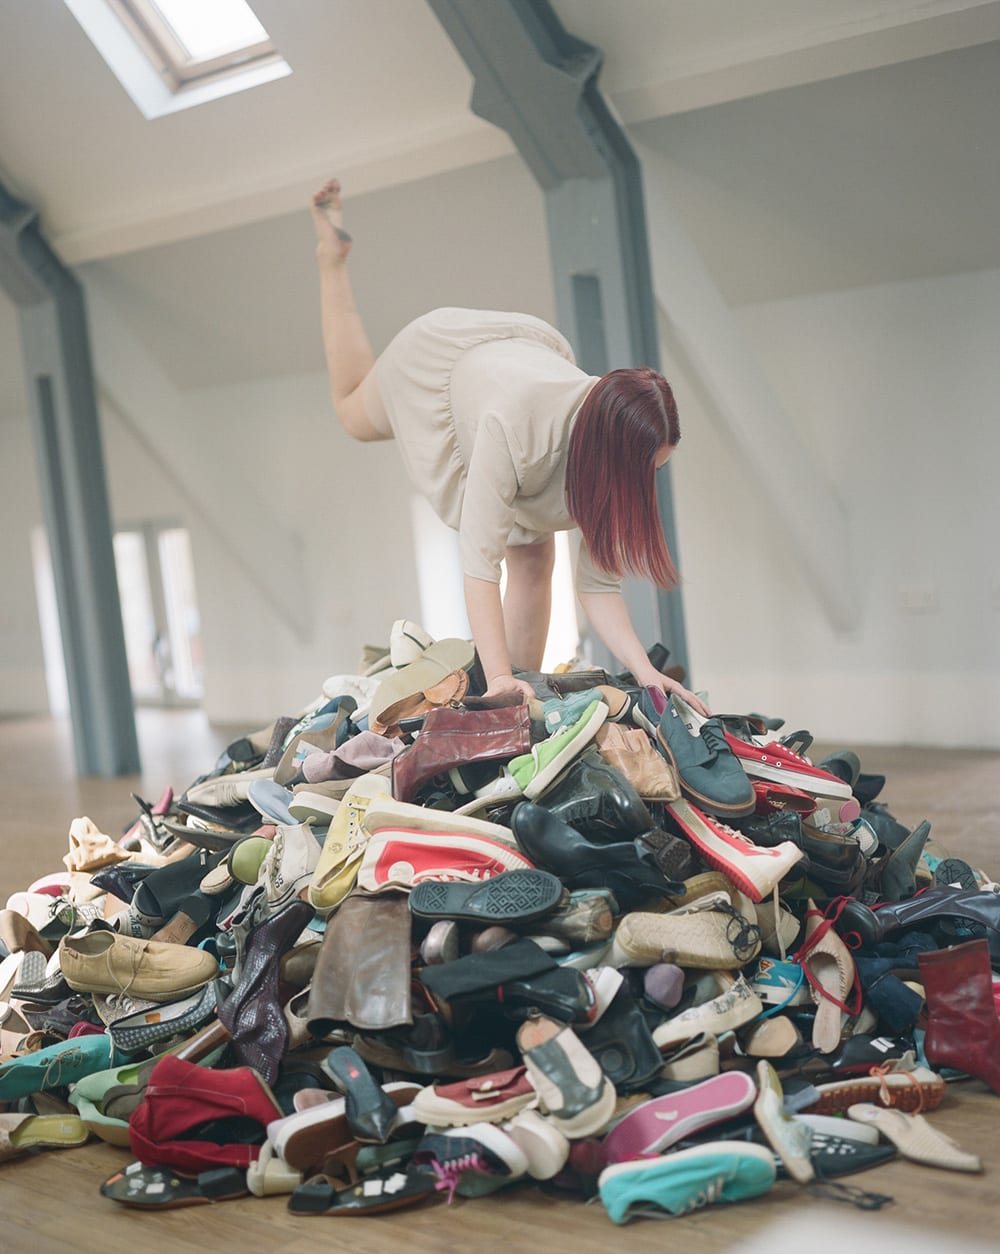 A-Thousand-Shoes_And-these-shoes-will-be-my-body-photographic-documentation-2.jpg